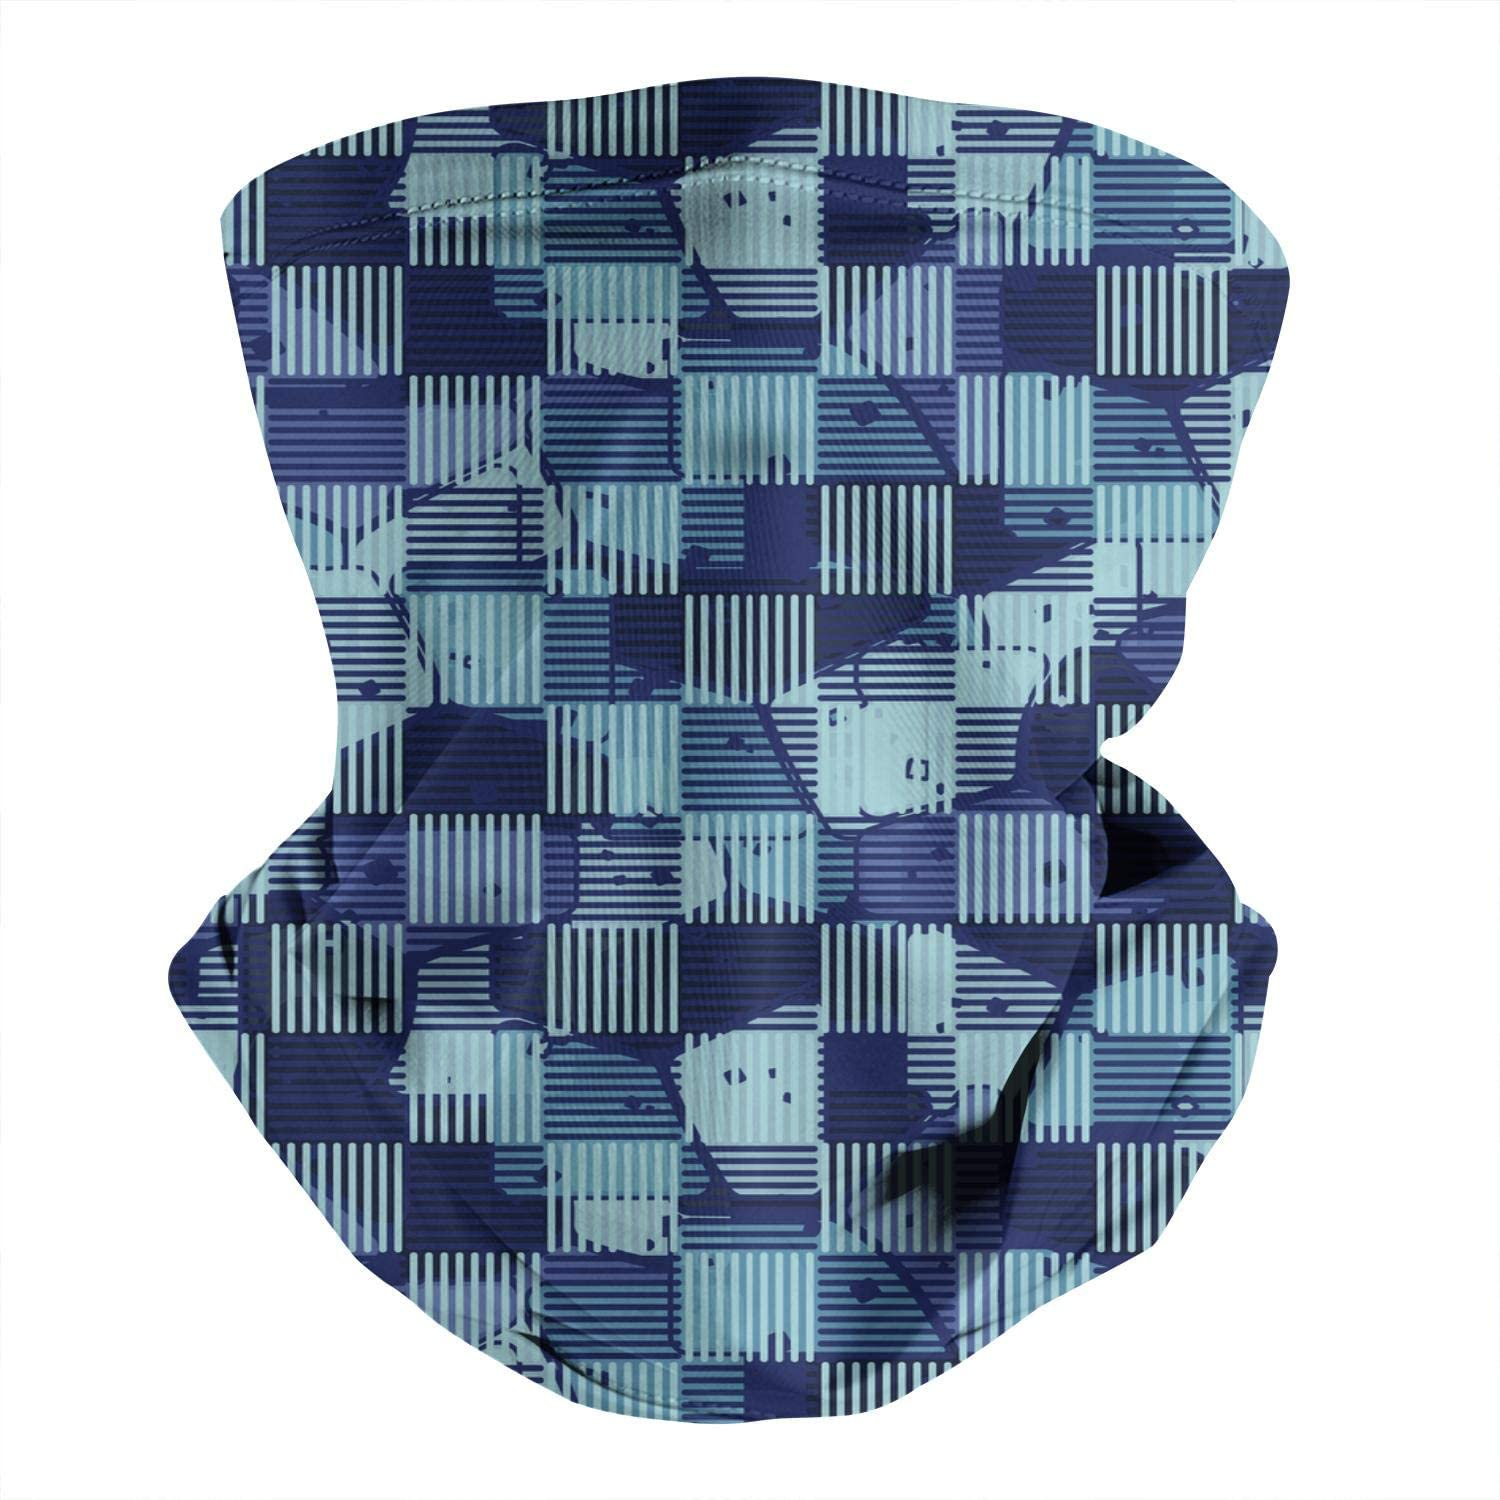 Men's Womens Multifunctional Neck Gaiters Bandanas Abstract-multicolored-camouflage-checkerboard- Vintage Face Mask